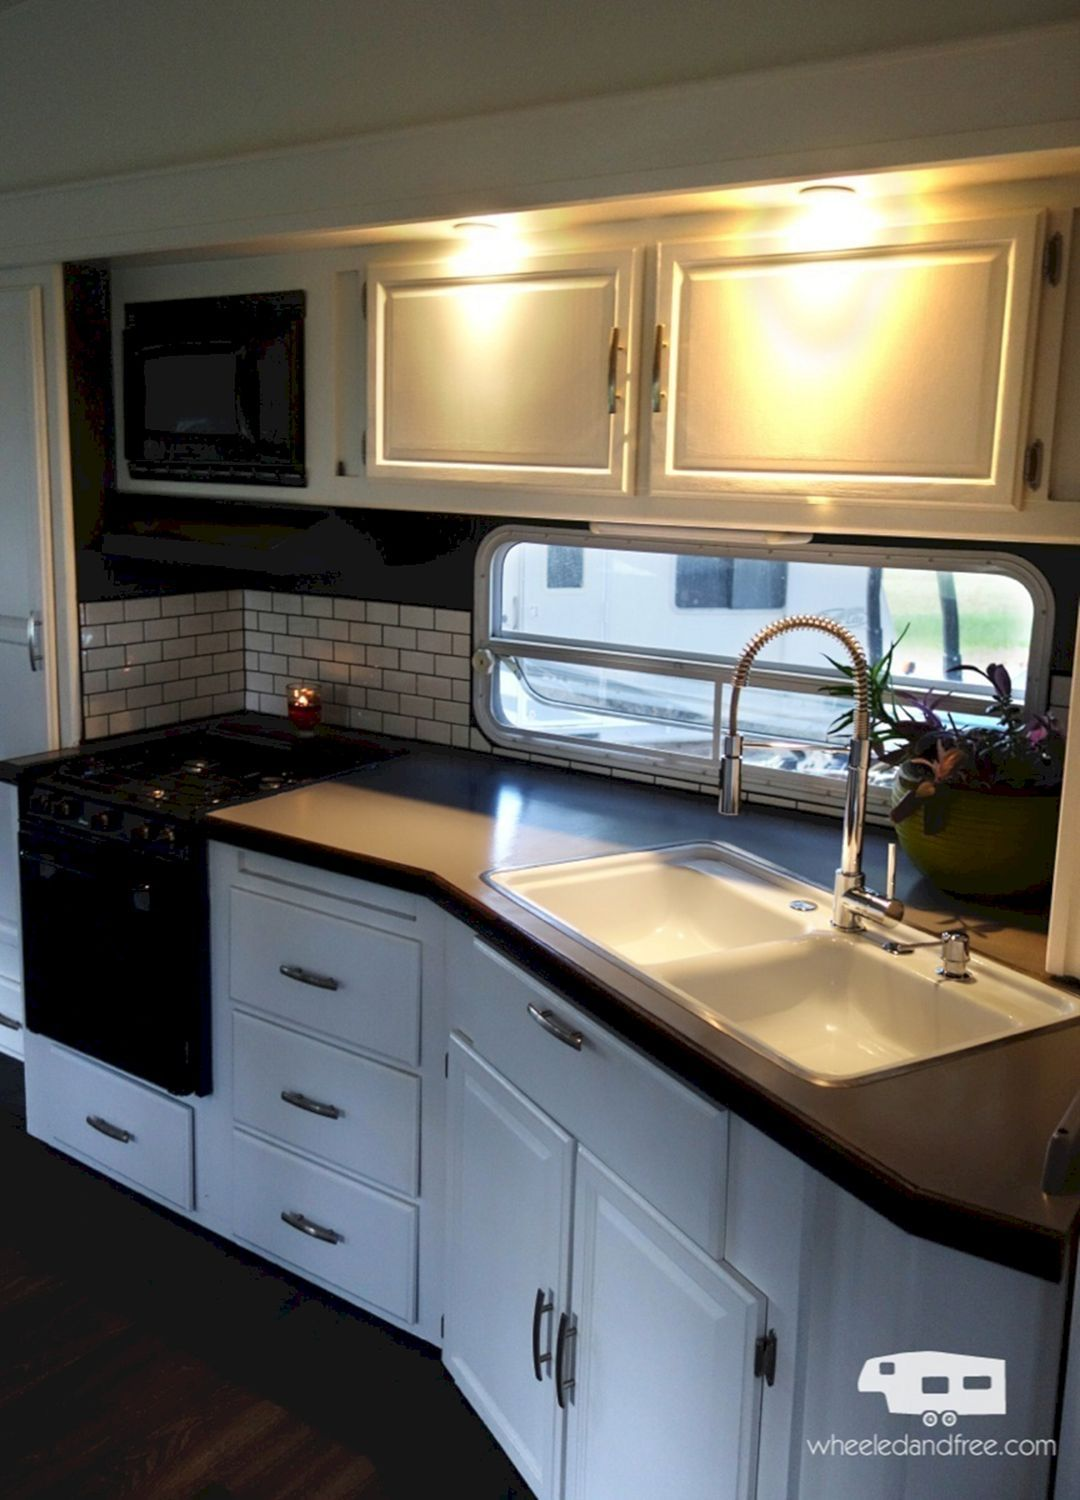 Amazing RV Kitchen Remodel For Enjoyable Cooking Outdoor 40+ Best Ideas - Remodeled campers, Rv kitchen remodel, Rv renovations, Camper living, Rv kitchen, Rv makeover - A kitchen is a hub to any home and it is said that a stunning kitchen may add enormous amounts of value to your property  It is considered as the central and very essential part of our home  It cou…